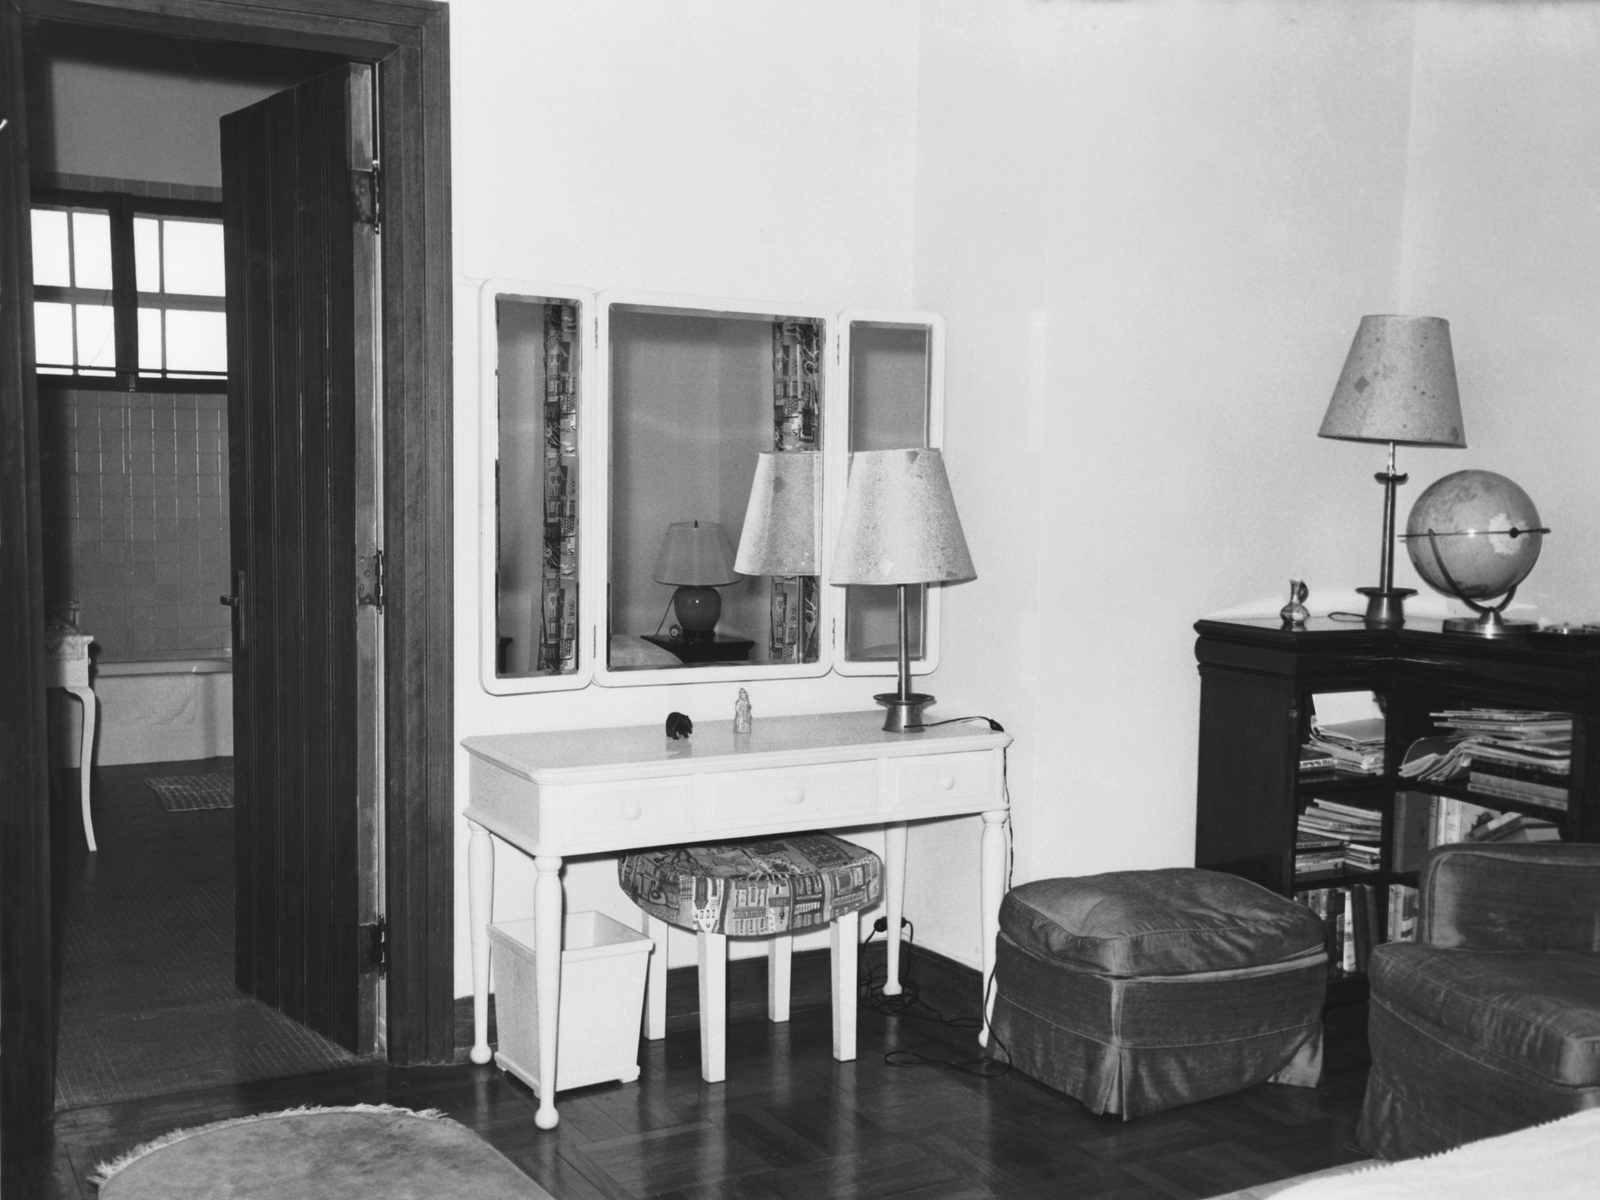 Hong Kong - Principal Officer/Consul General Residence - 1963